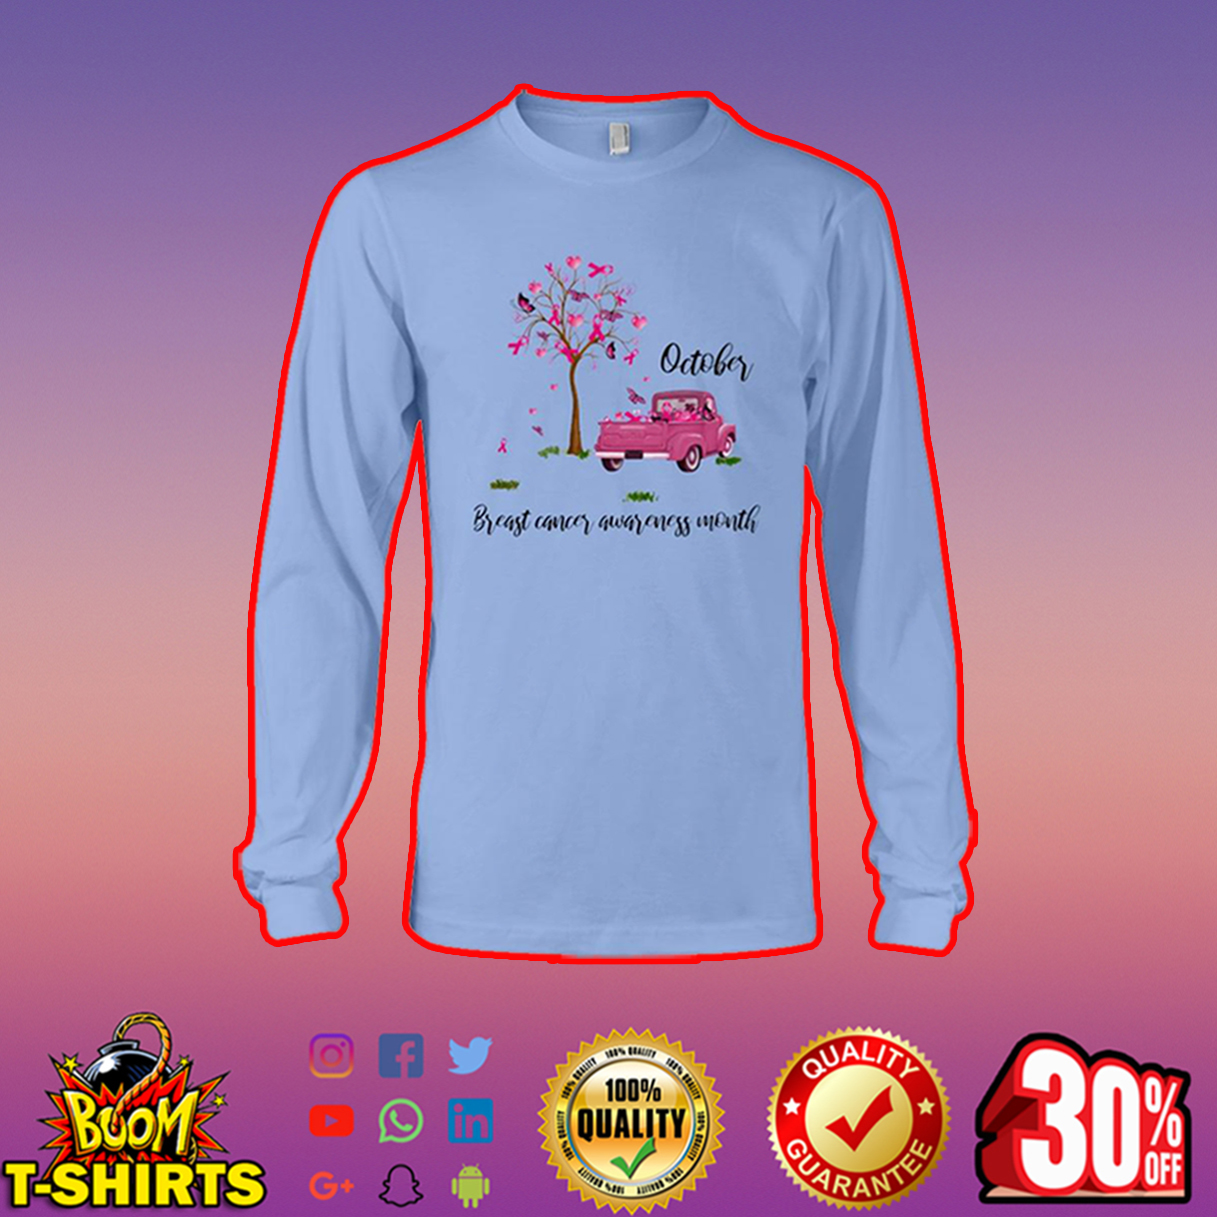 October breast cancer awareness month long sleeve tee